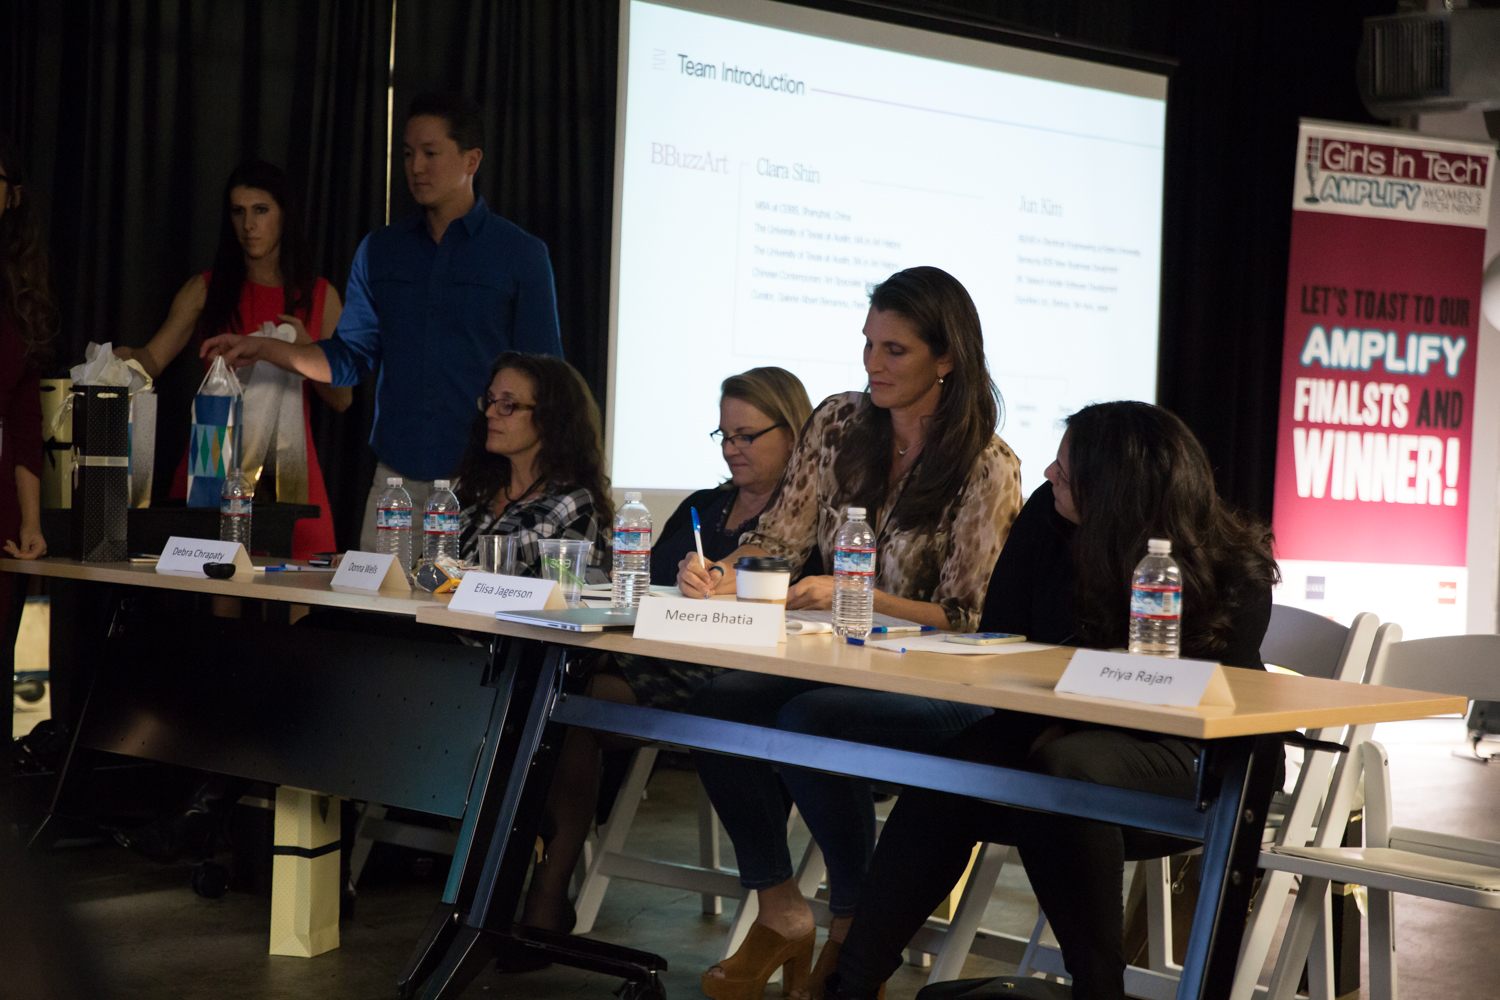 Girls in Tech AMPLIFY Womens Pitching Competition